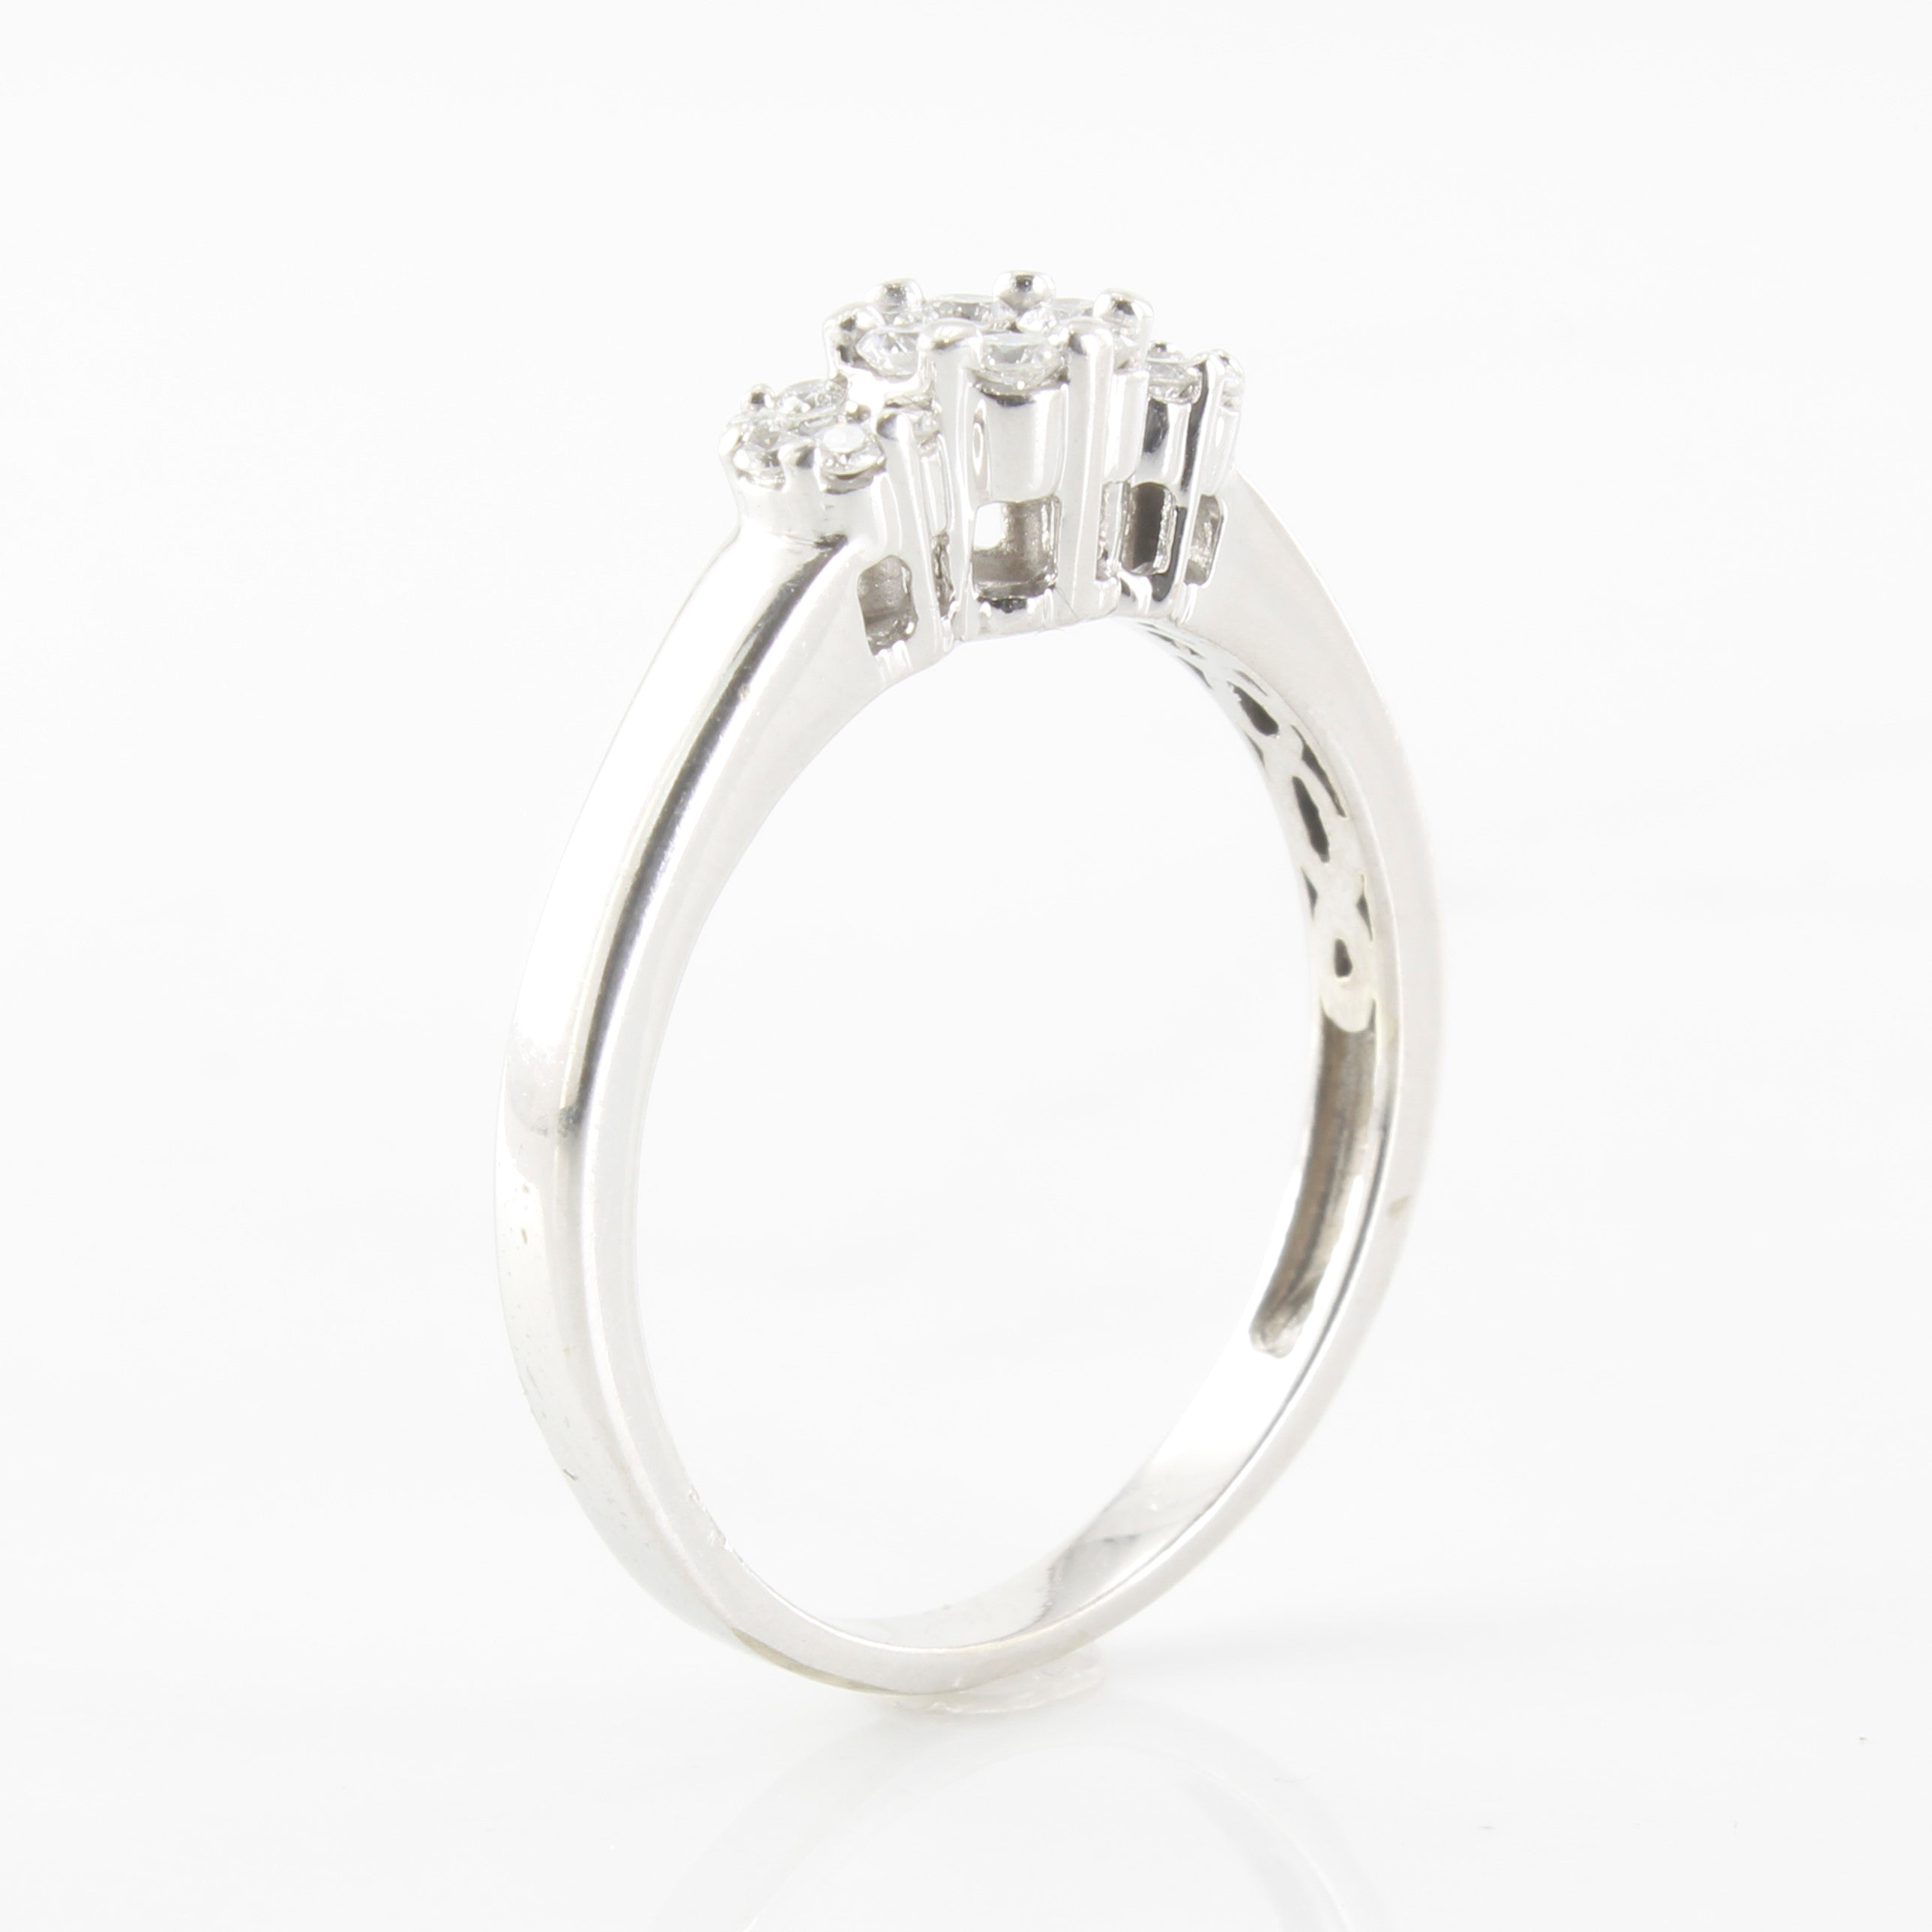 Triple Cluster Diamond Ring | 0.25ctw | SZ 7.5 |